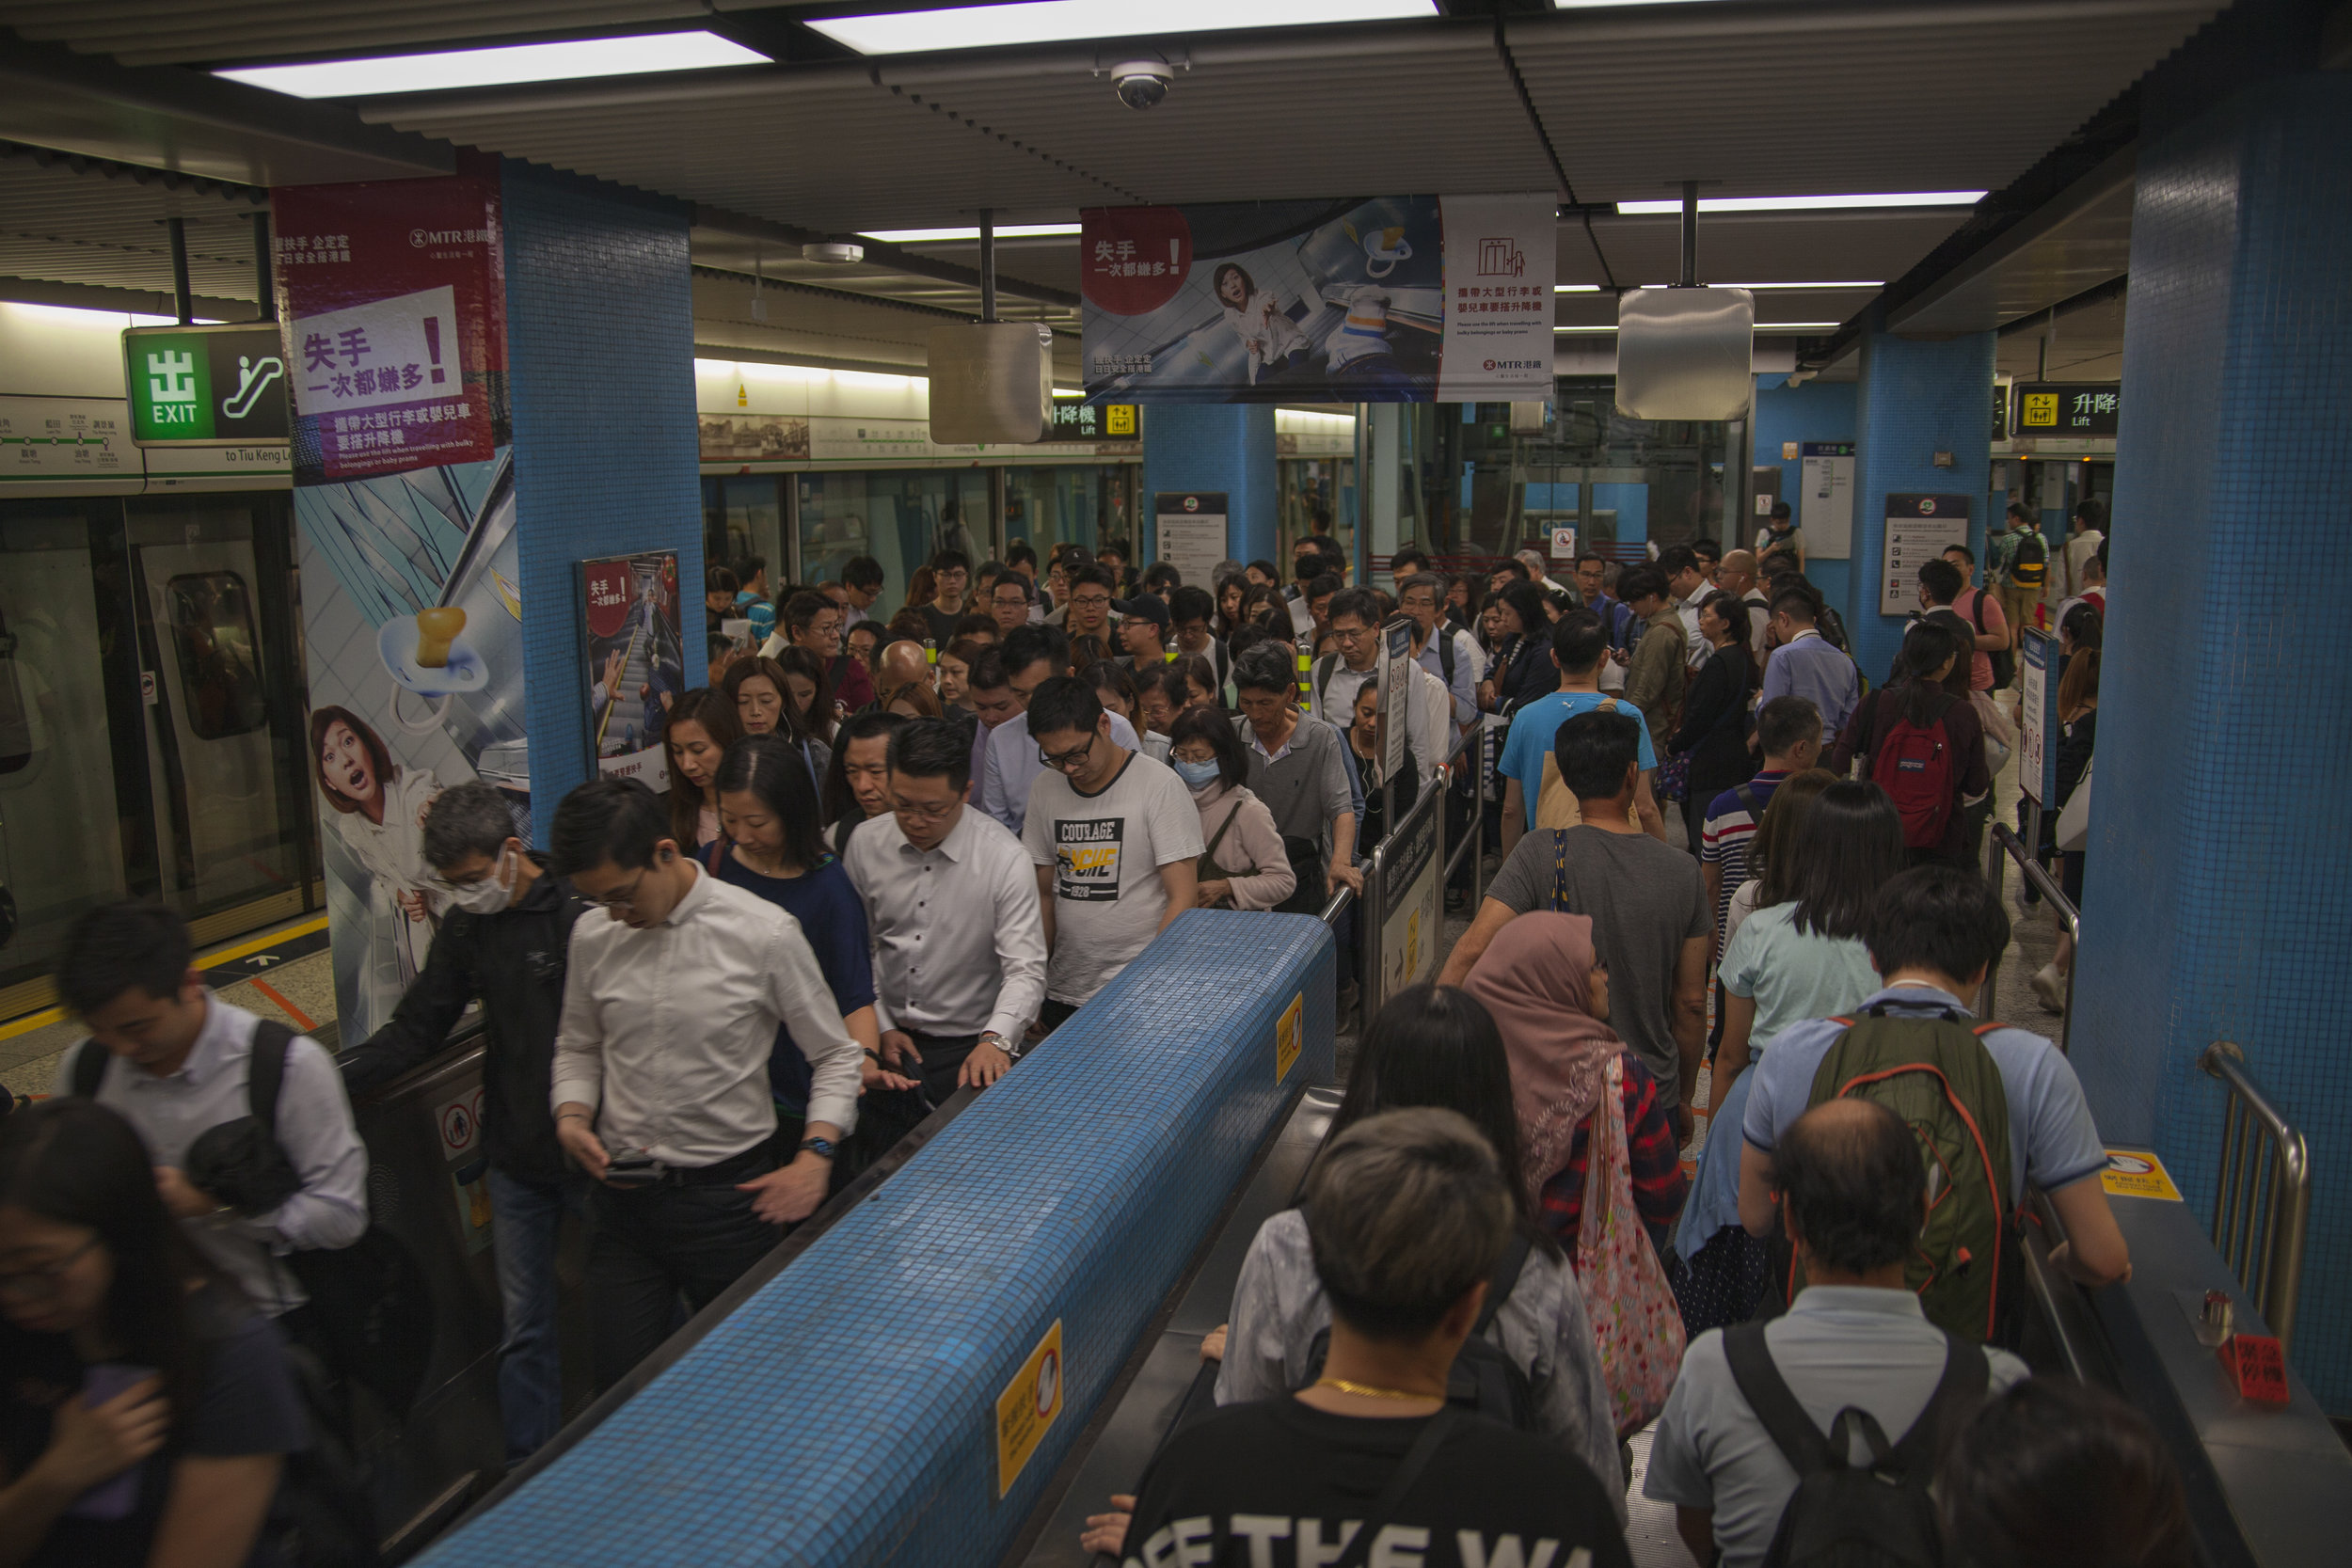 Look at this packed metro-station, there are so many people here!